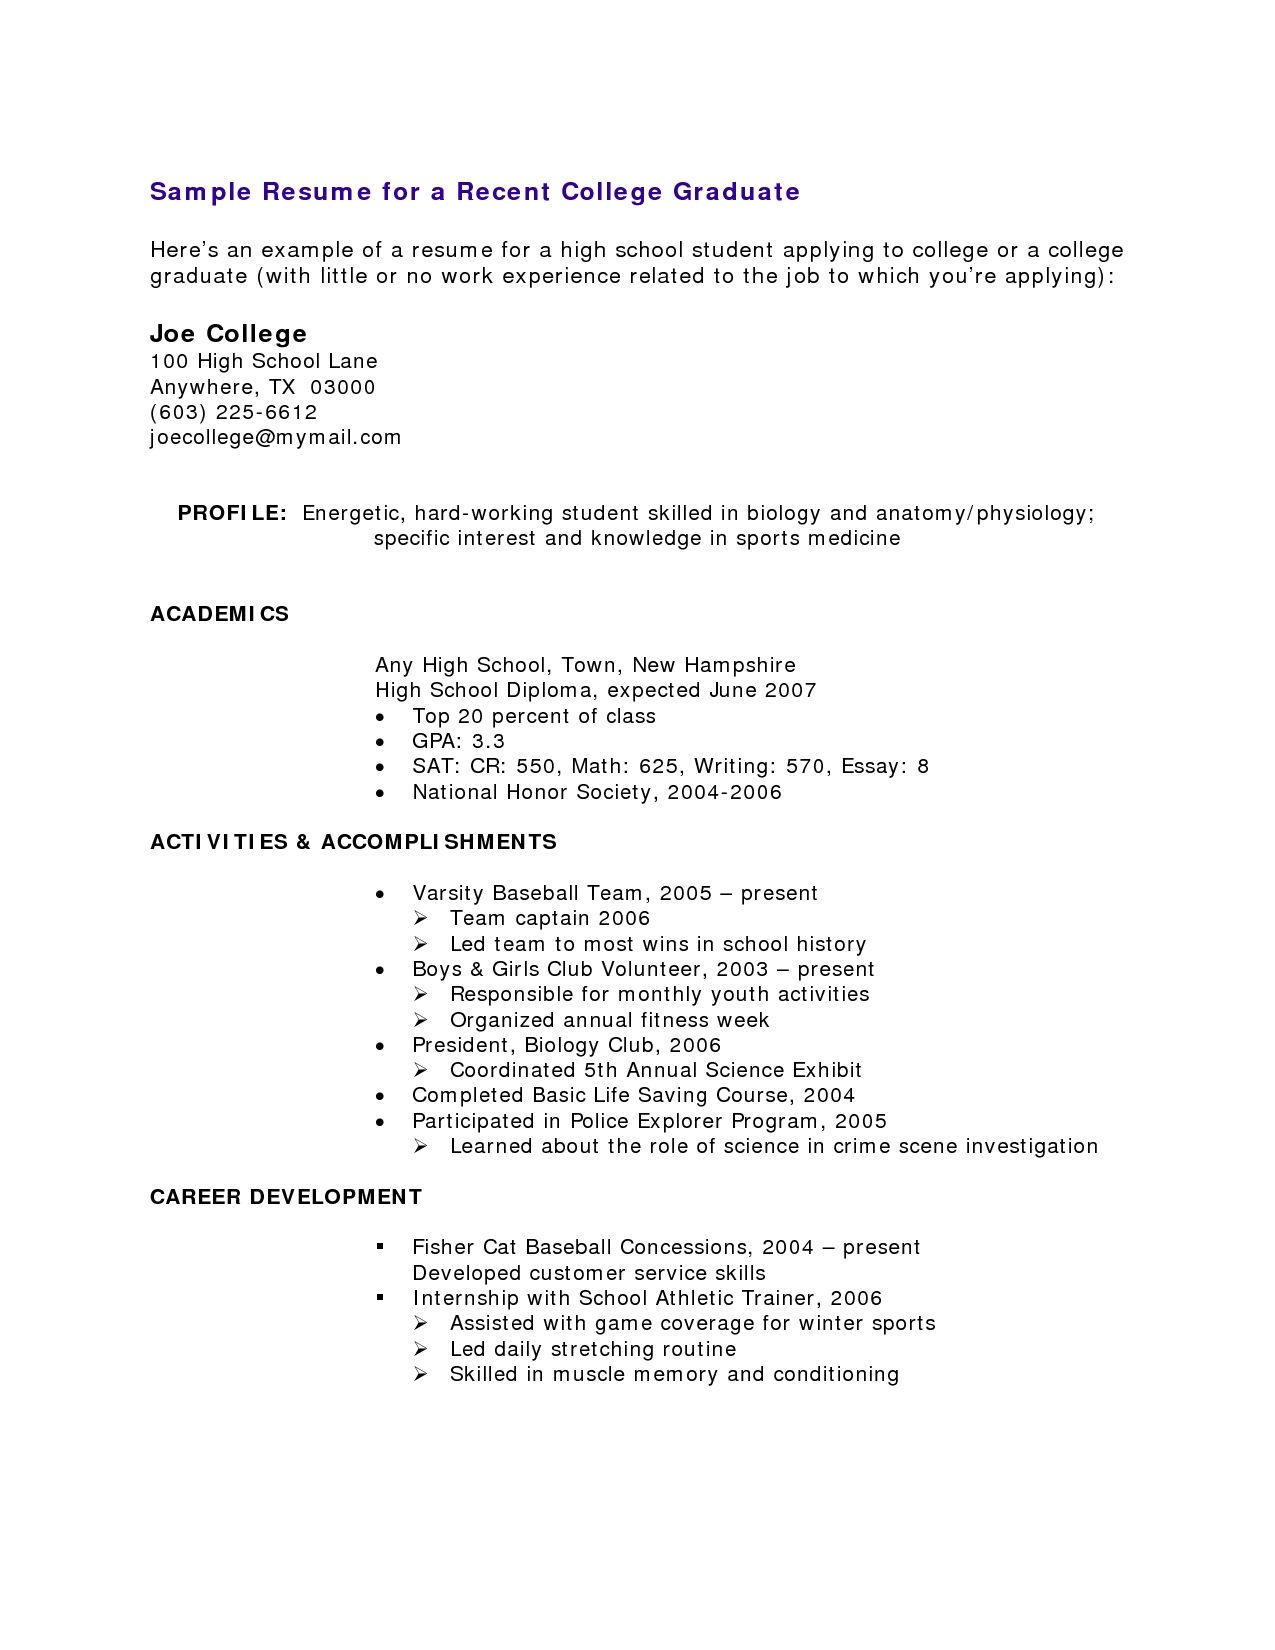 resume Resume Template For High School Student With No Work Experience high school student resume with no work experience examples for students no